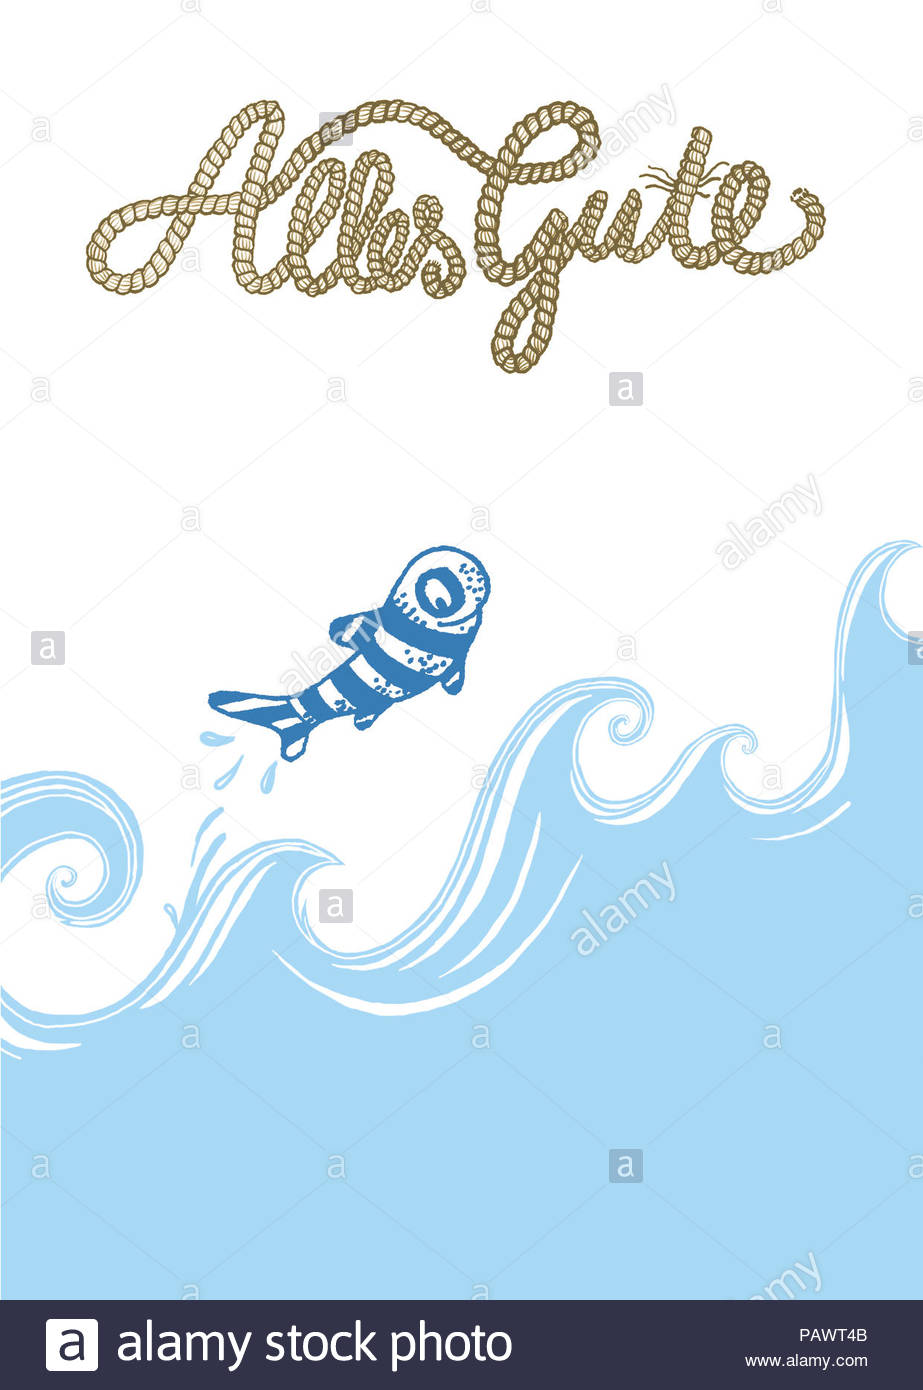 Fish All The Best Series Greeting Cards Stock Photo 213238715 Alamy